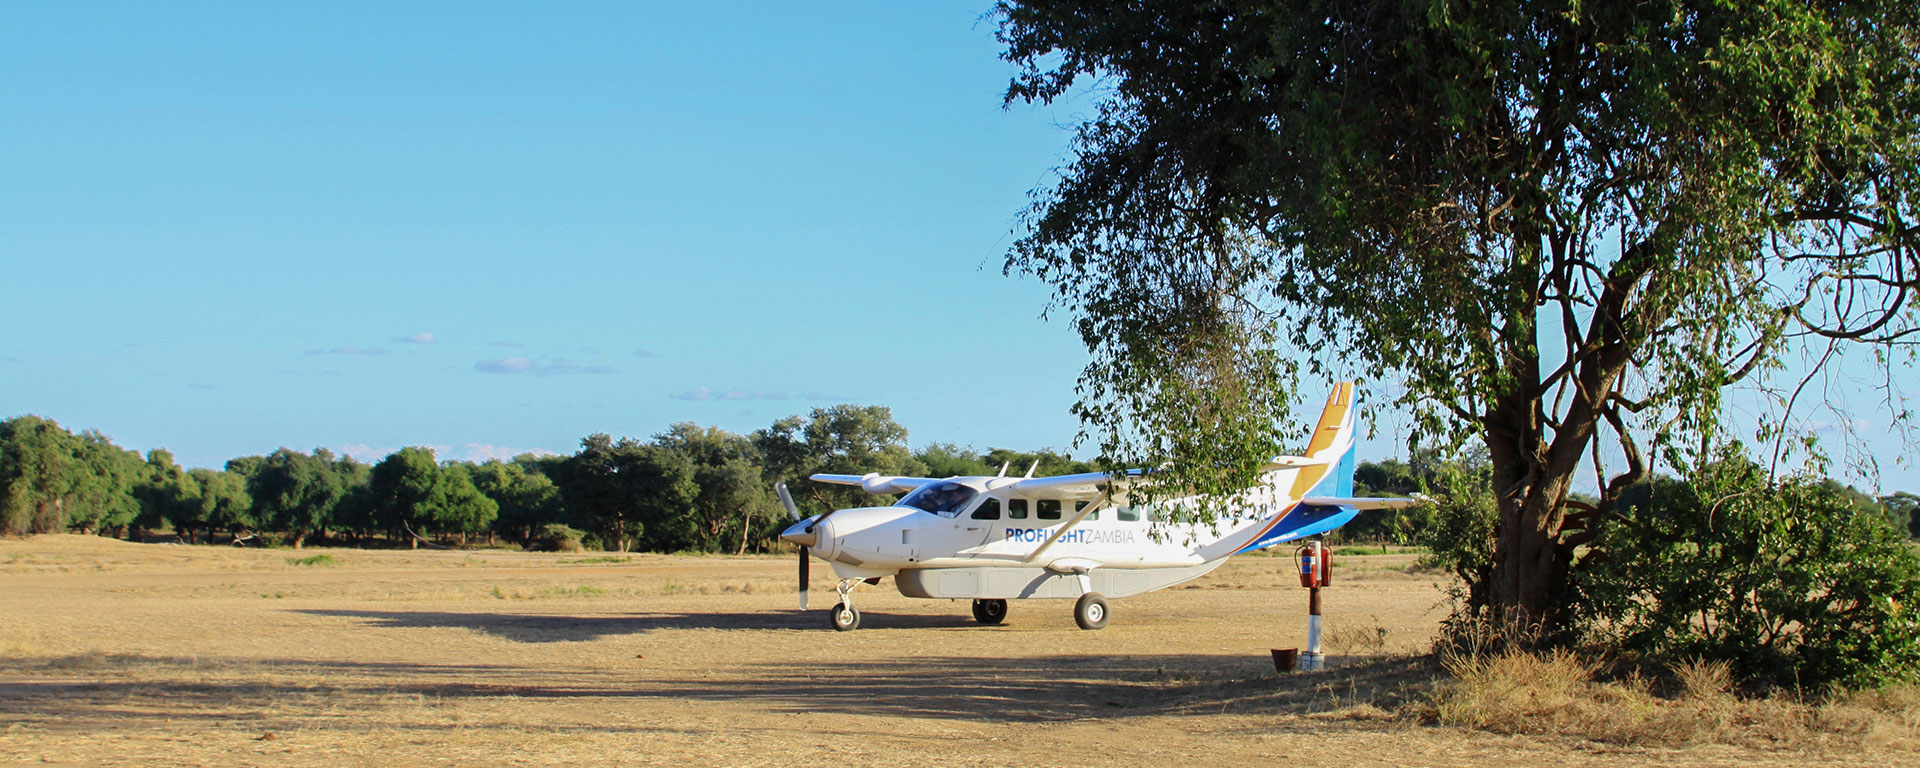 Lower Zambezi is serviced by Royal and Jeki airstrips, with regular flights from the capital, Lusaka.